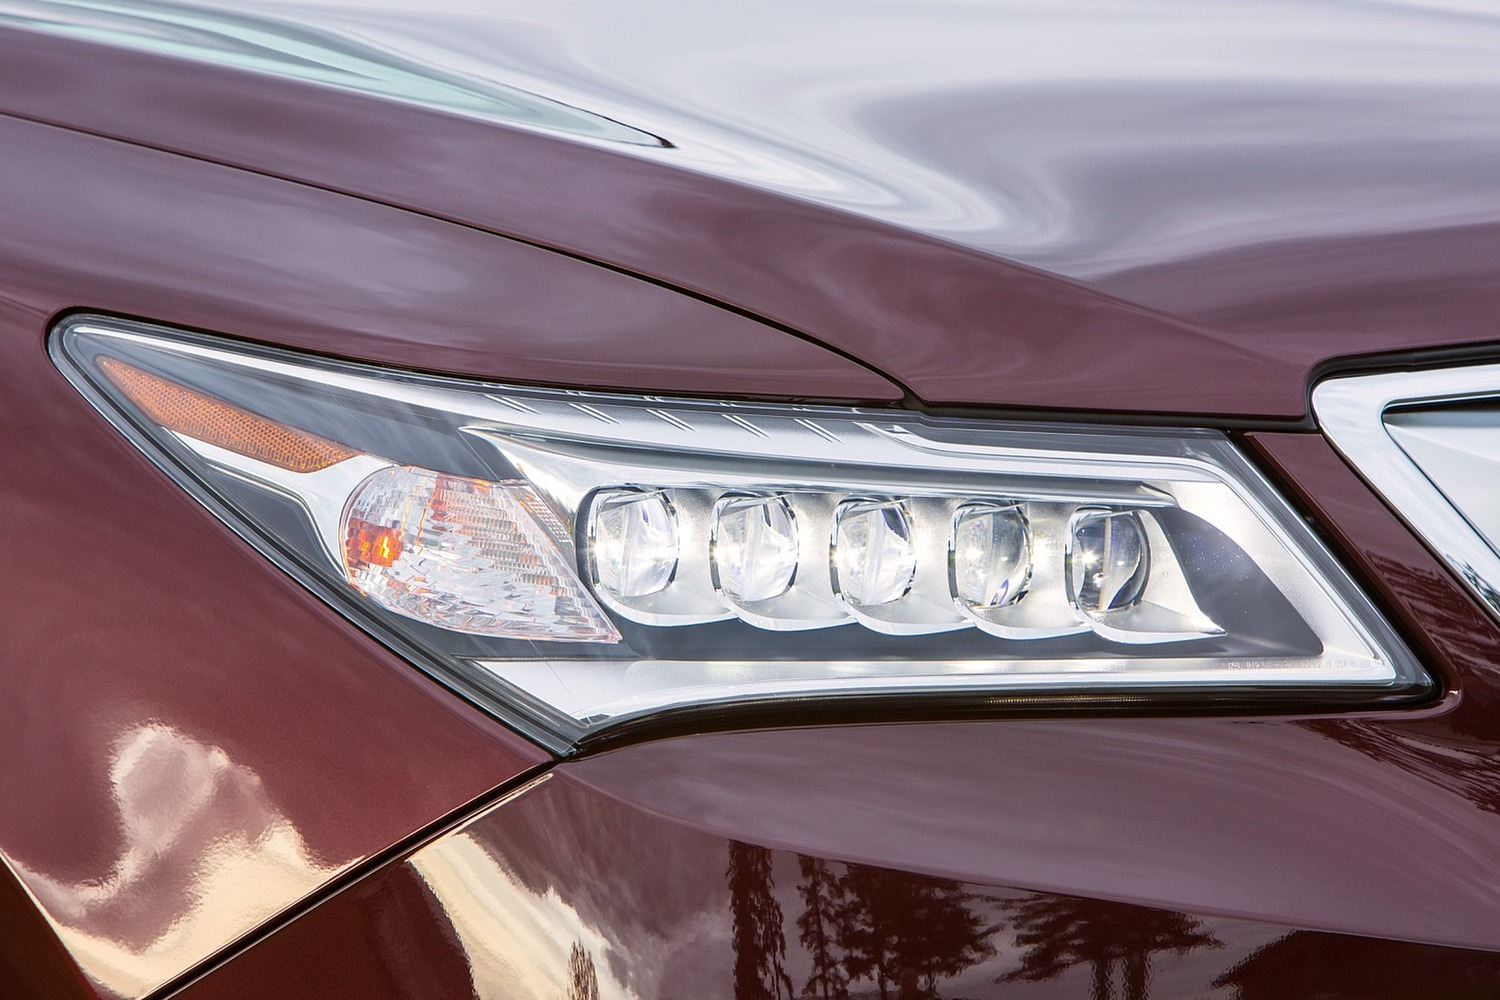 2016 Acura MDX Technology, Entertainment and AcuraWatch Plus Packages 4dr SUV Exterior Detail